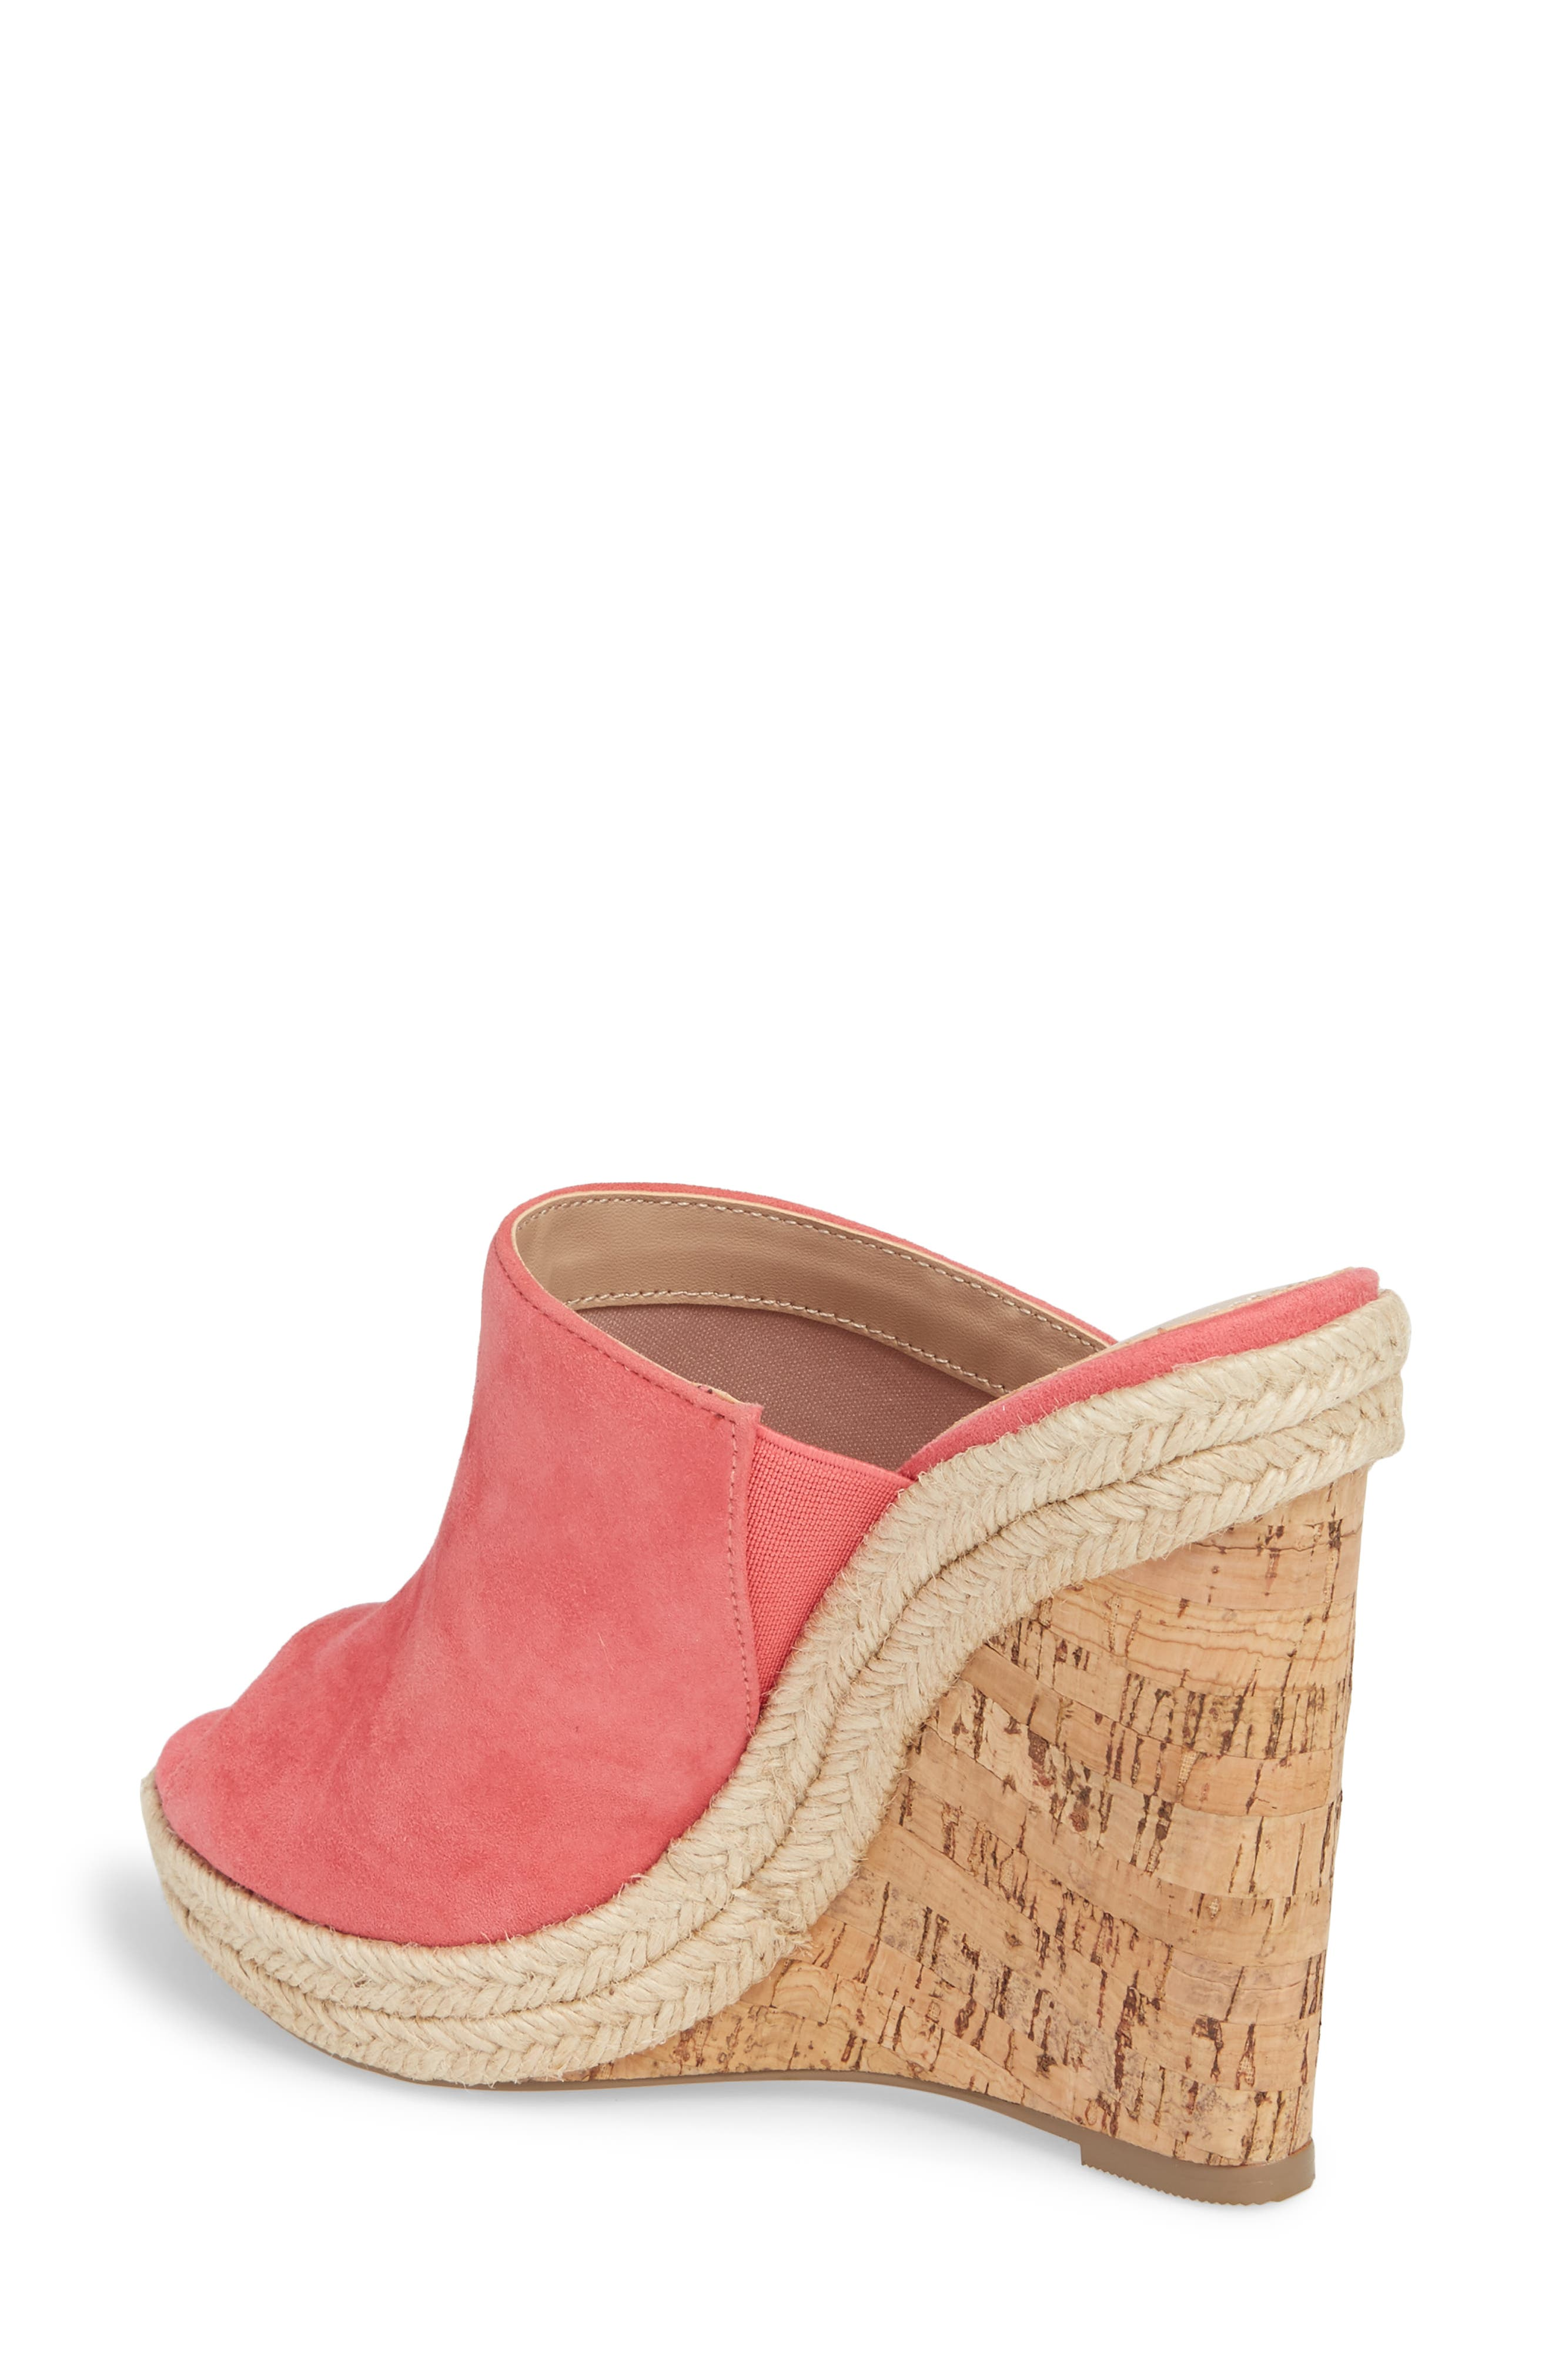 Balen Wedge,                             Alternate thumbnail 2, color,                             Coral Suede